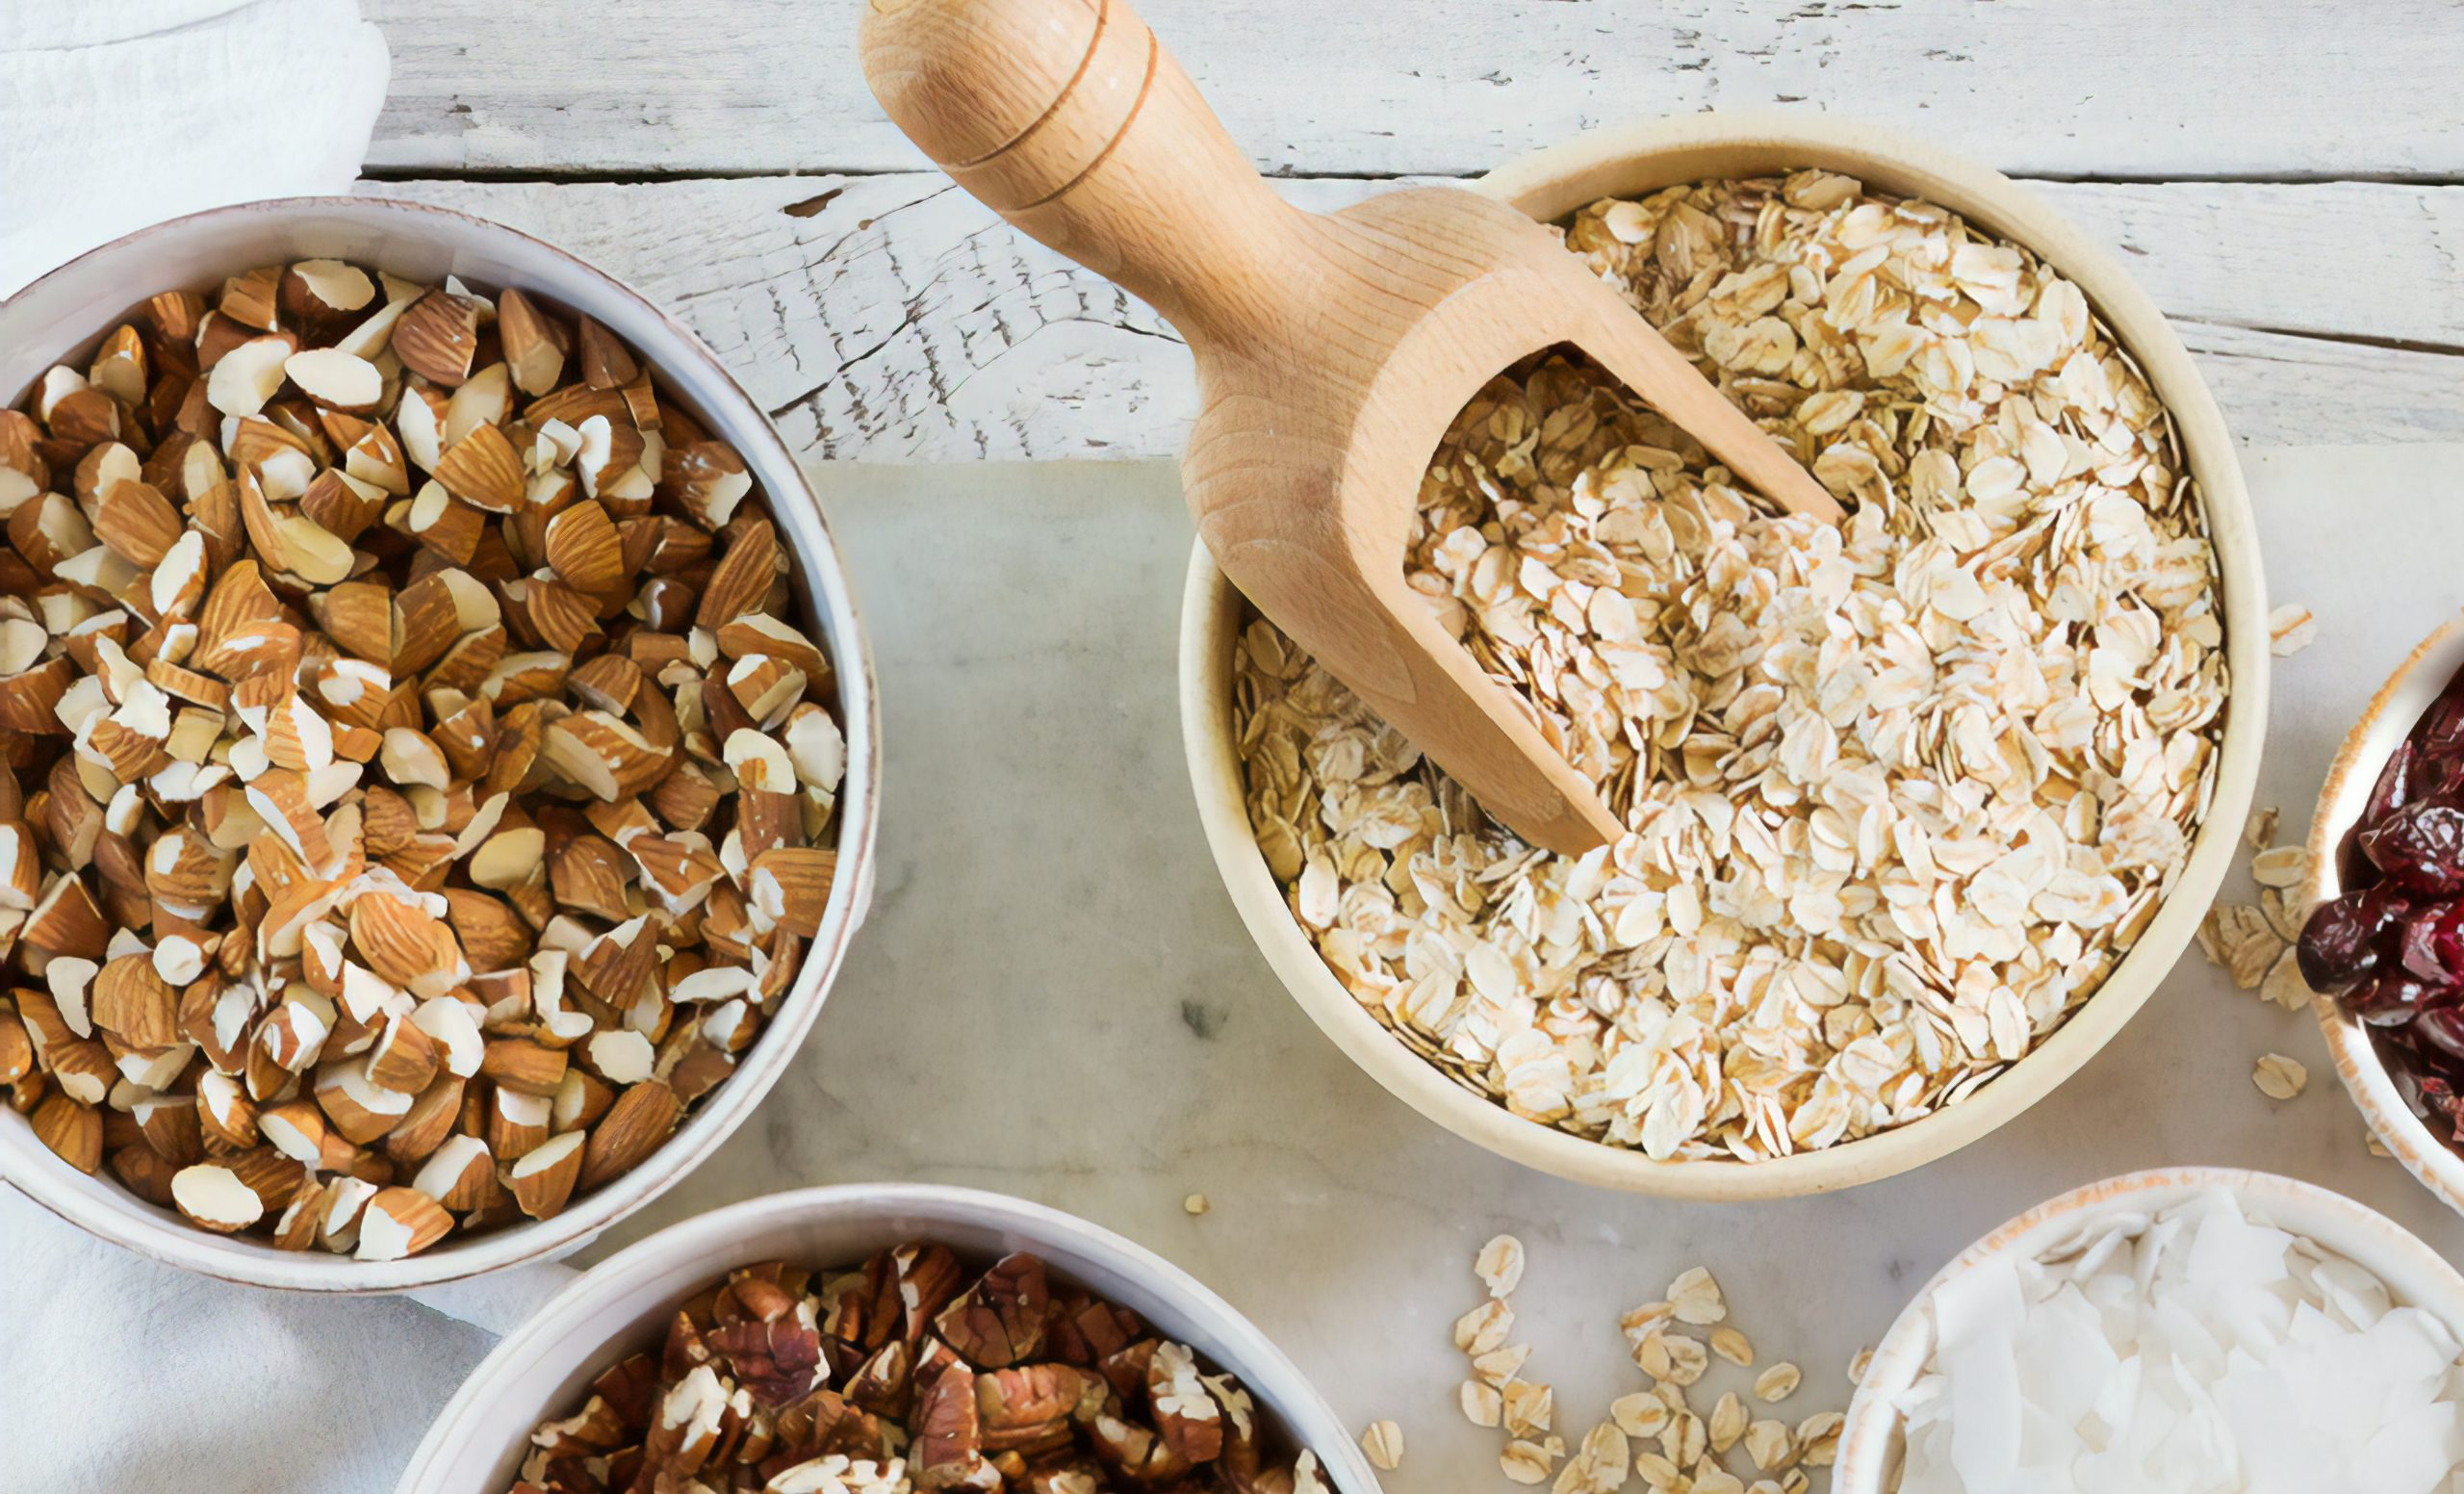 A variety of galactagogues, such as oats, coconut, flax, and almonds on a table